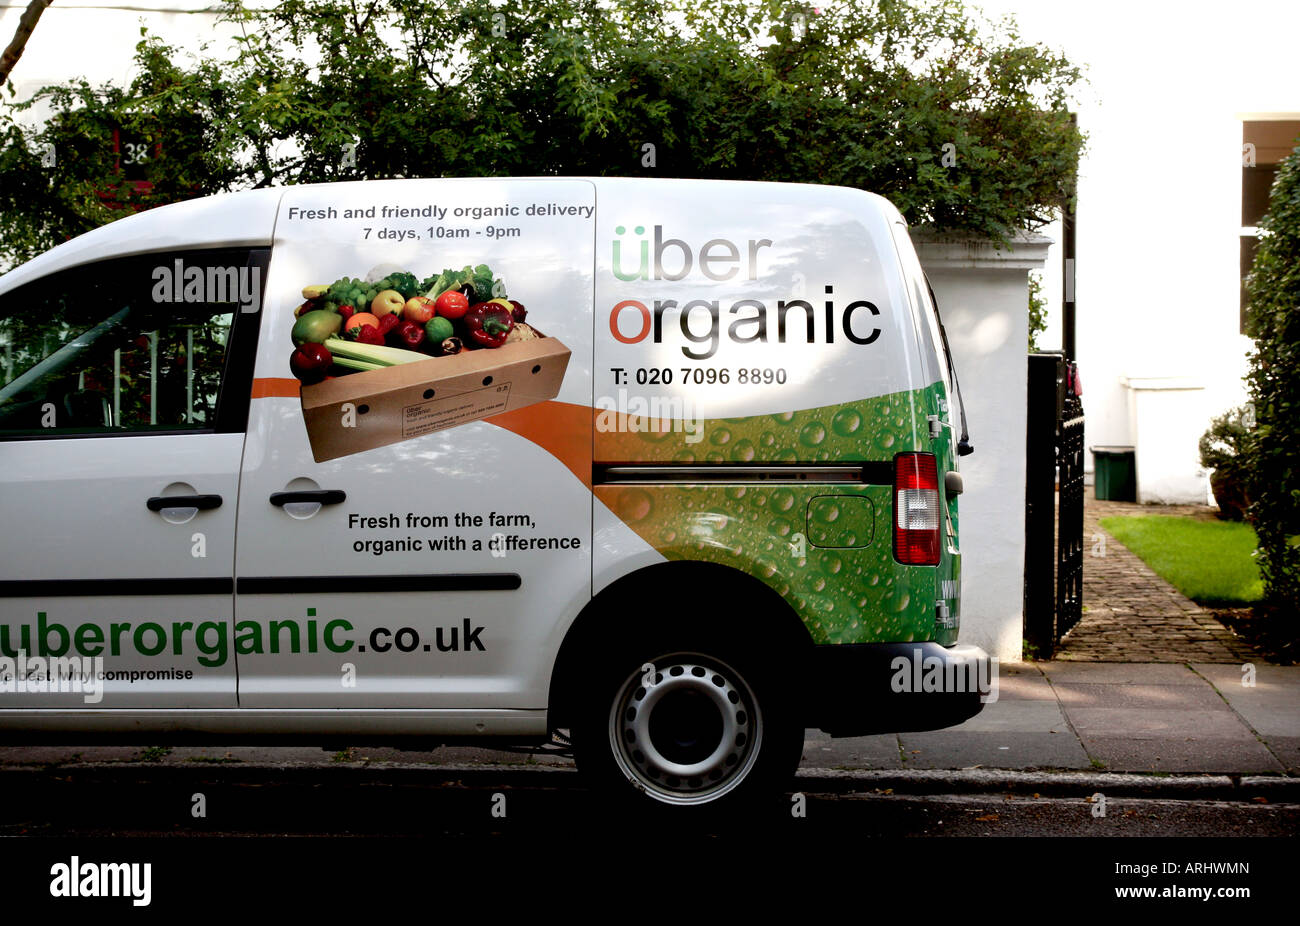 organic food delivery van in london street